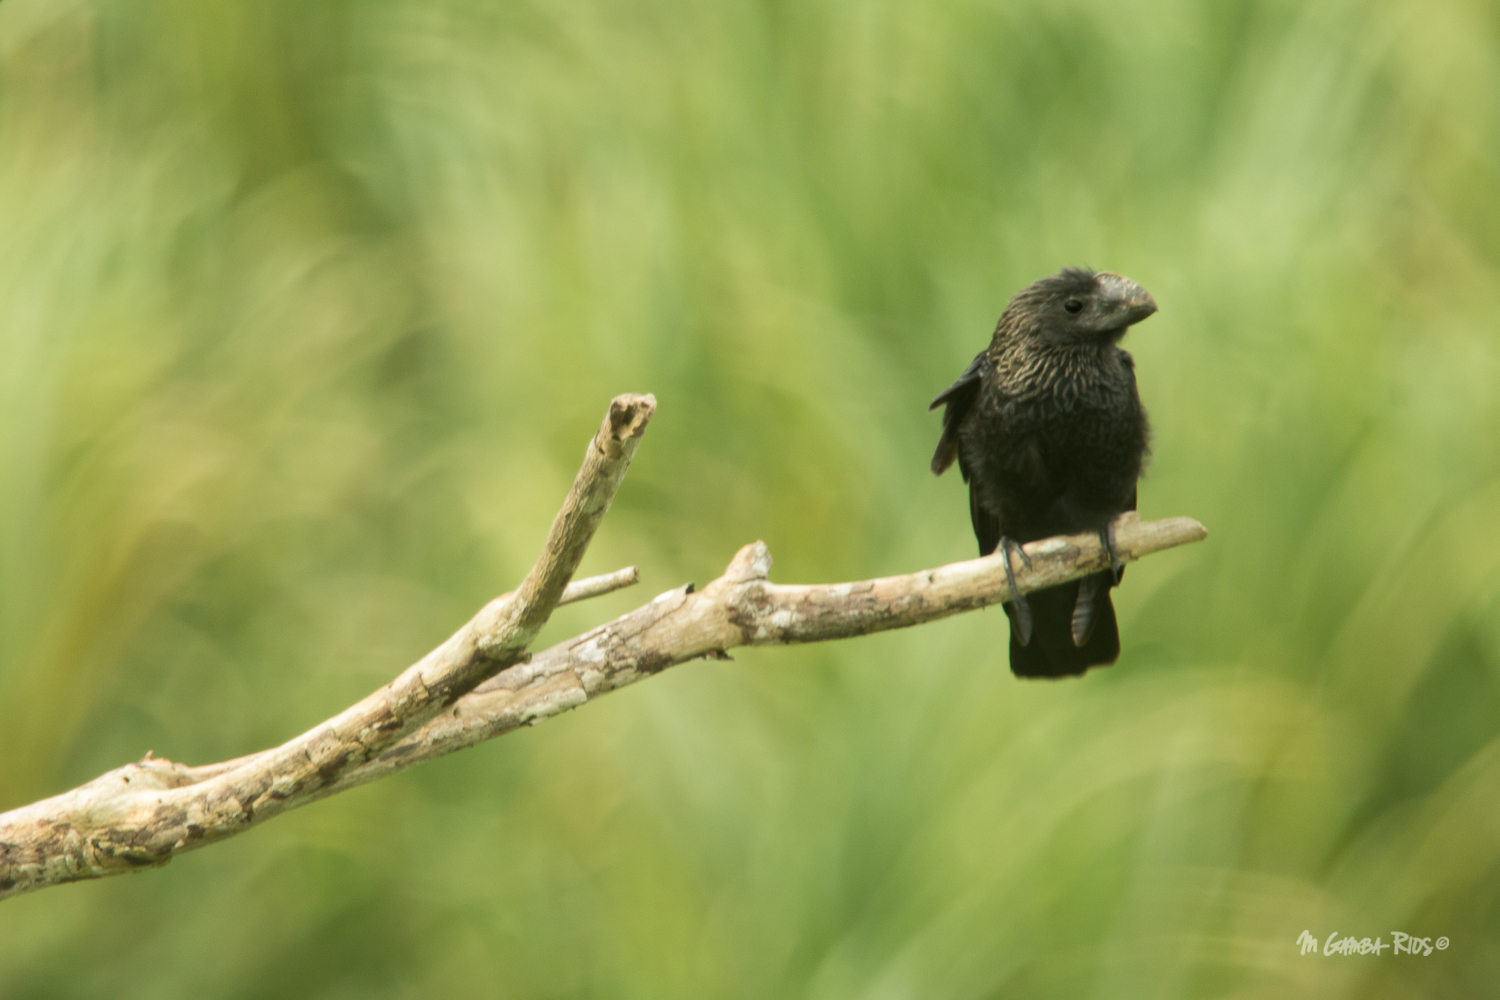 Smooth-billed_Ani_MGambaRIos.jpg